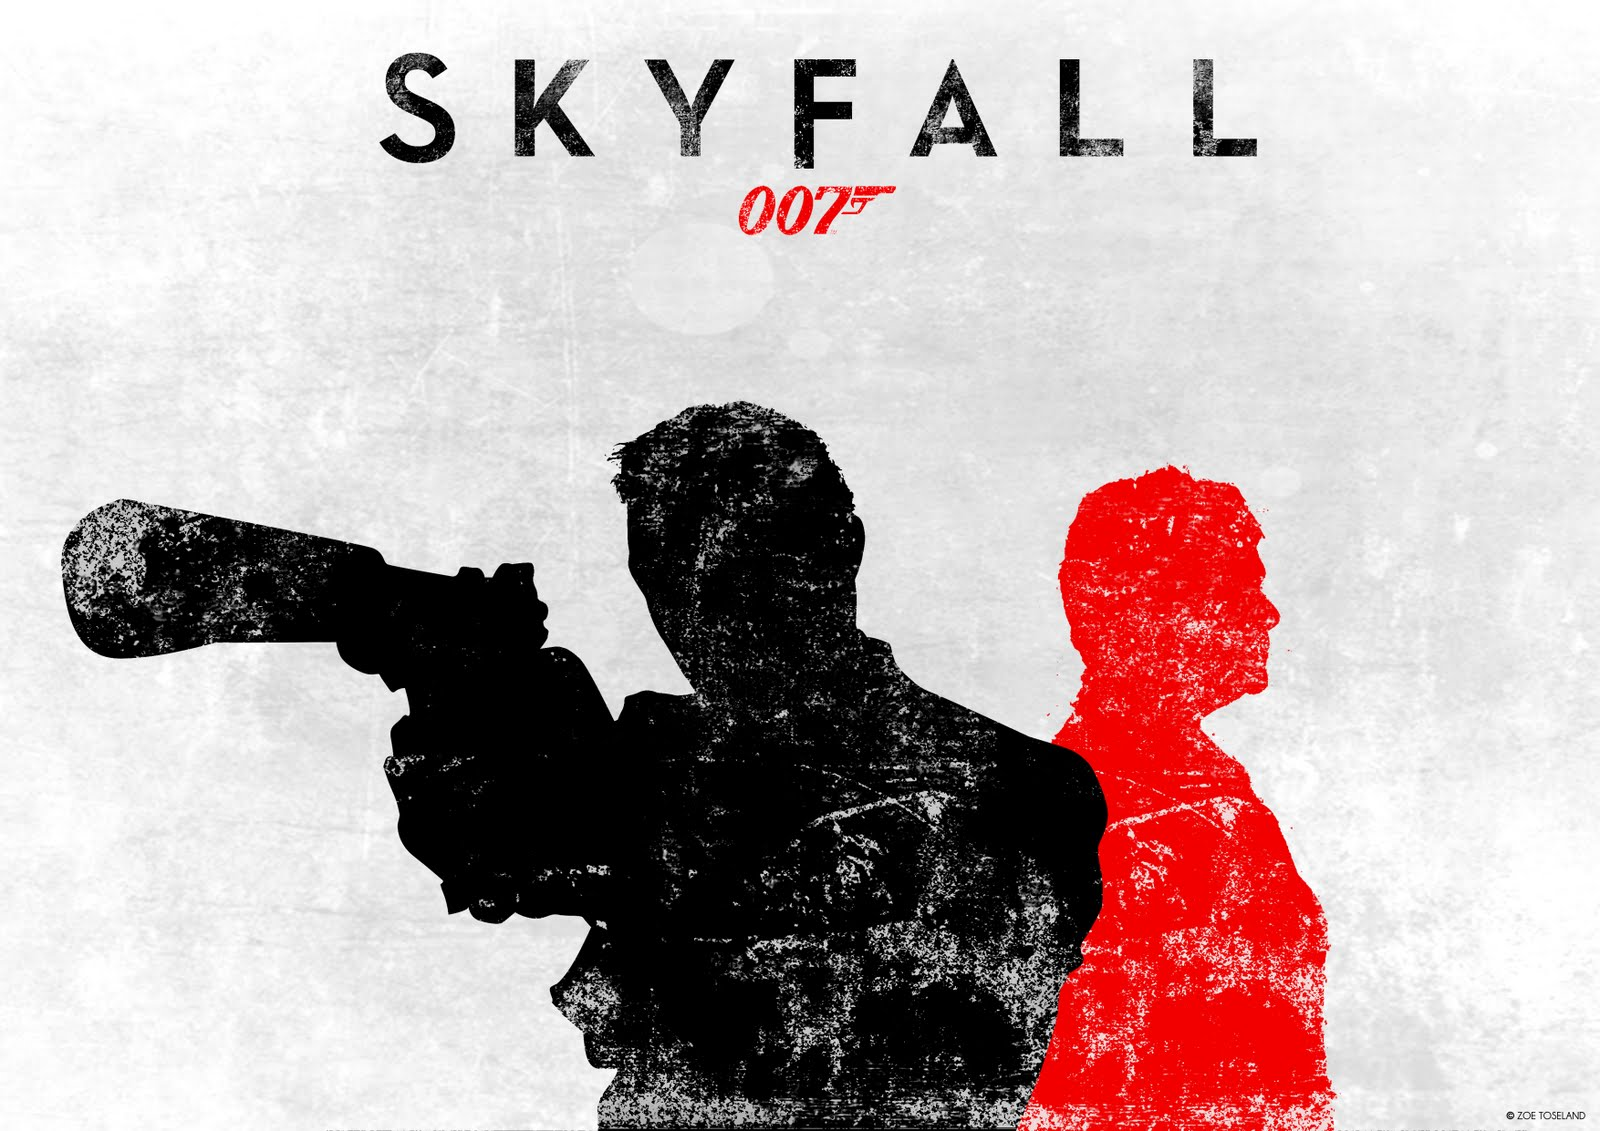 Hd wallpapers for iphone 5 james bond 007 skyfall - James bond wallpaper iphone 5 ...